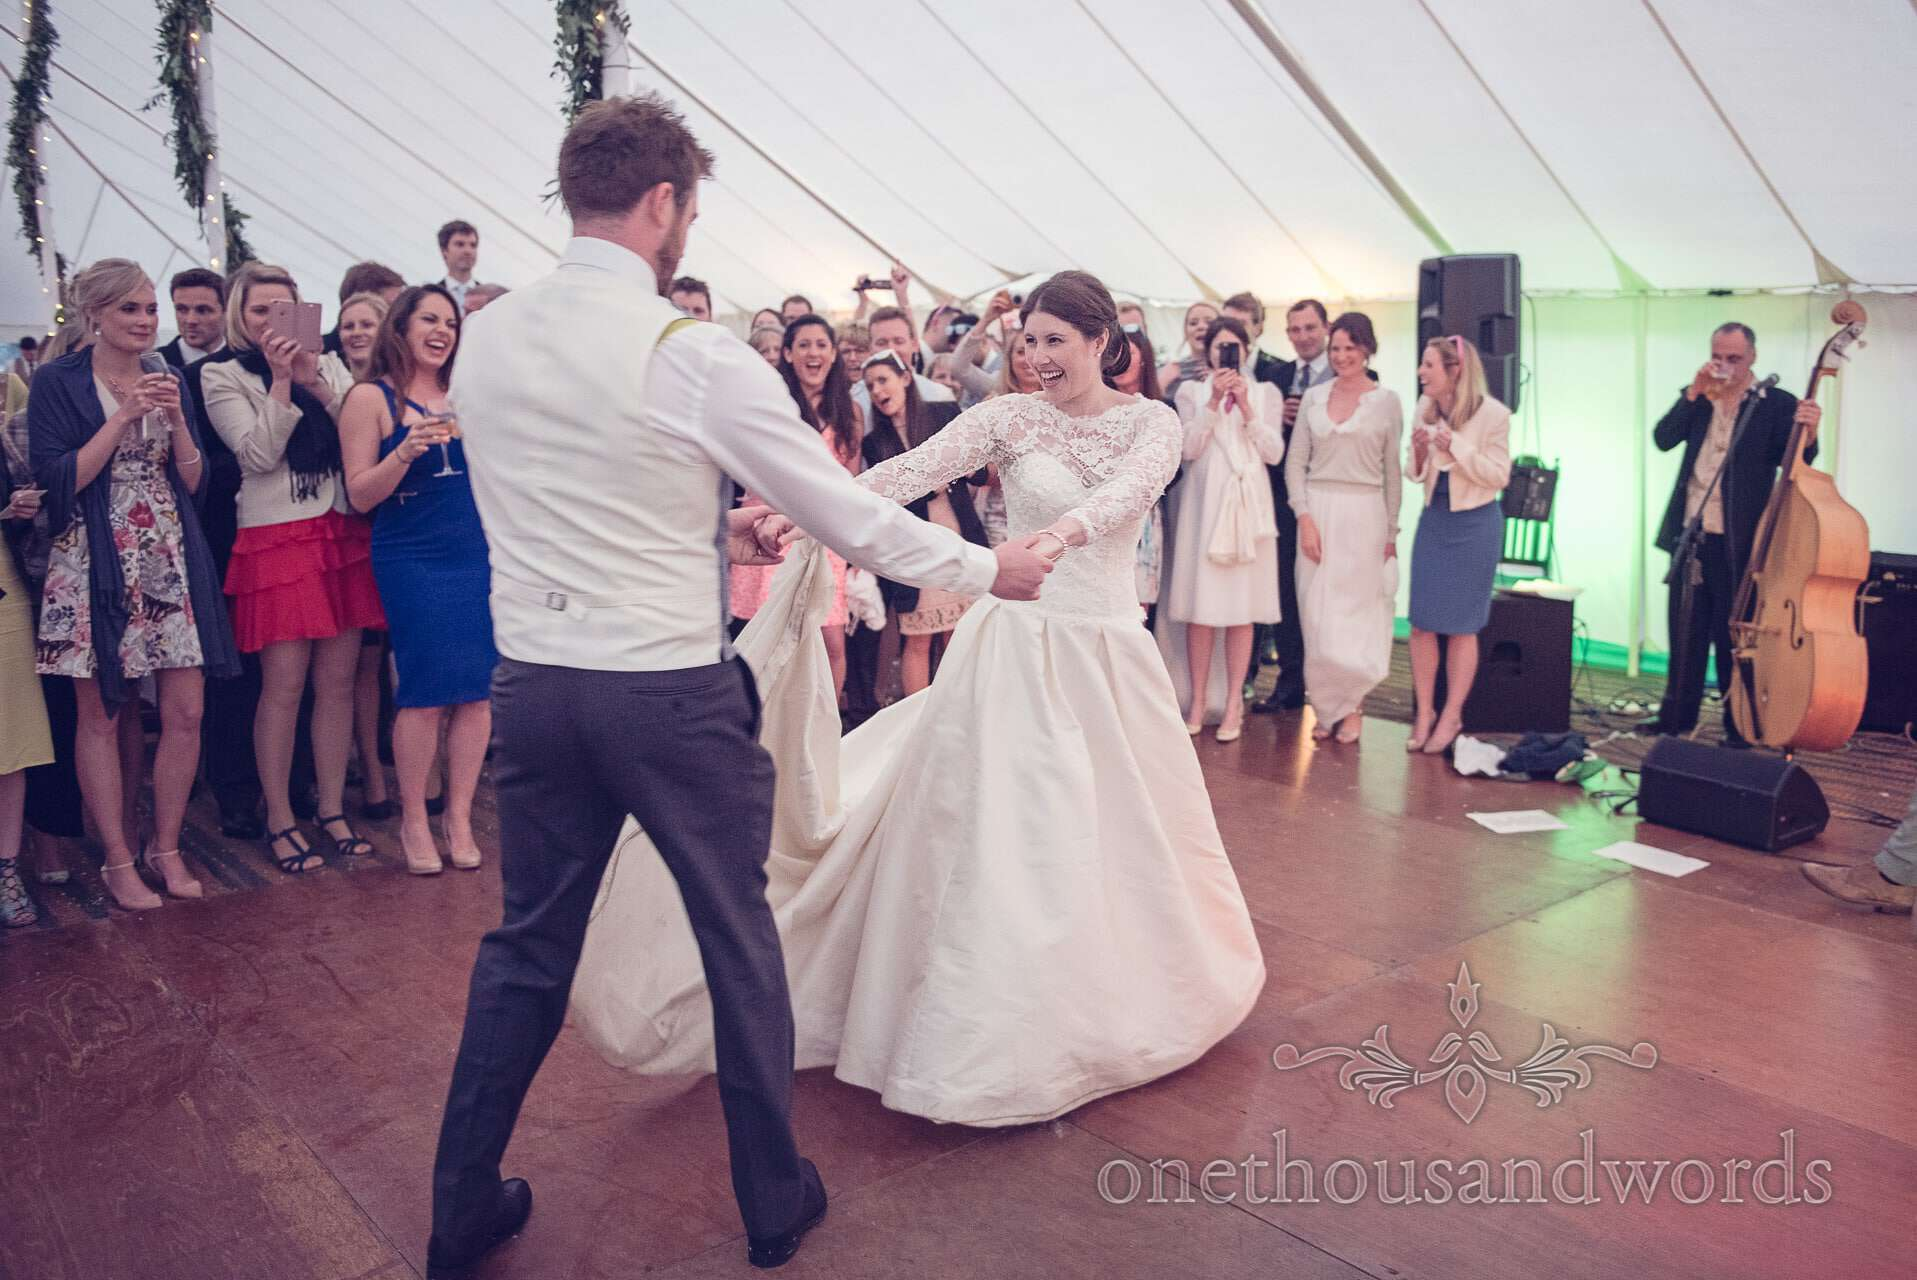 Bride and groom first dance at The Priory Wareham wedding